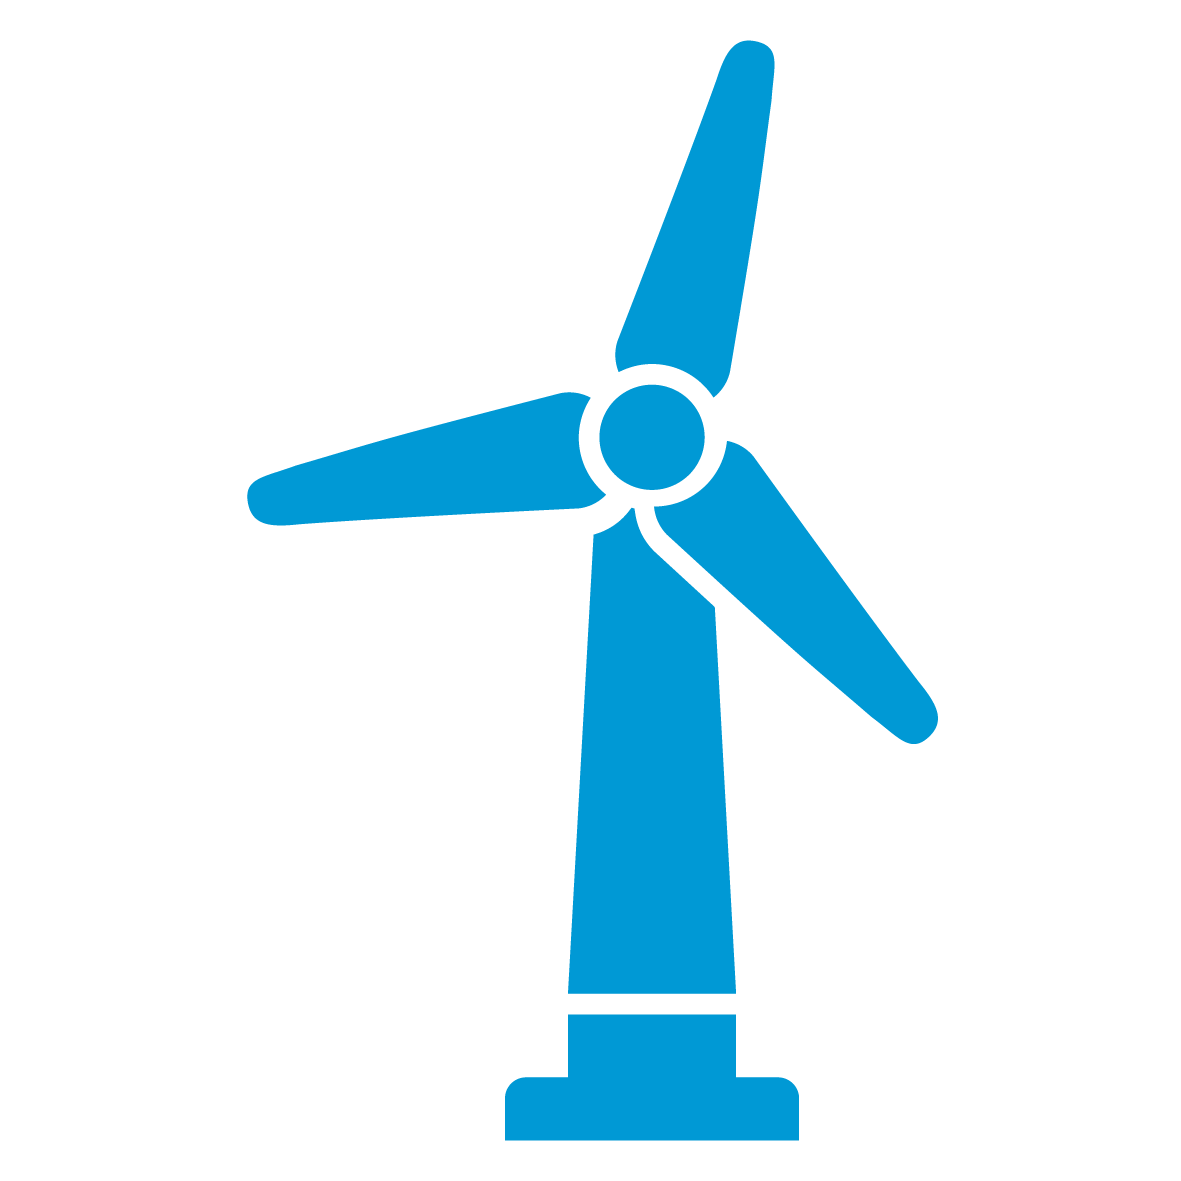 Energy and Resources Icon - a styled, blue, 3-bladed power-generating windmill